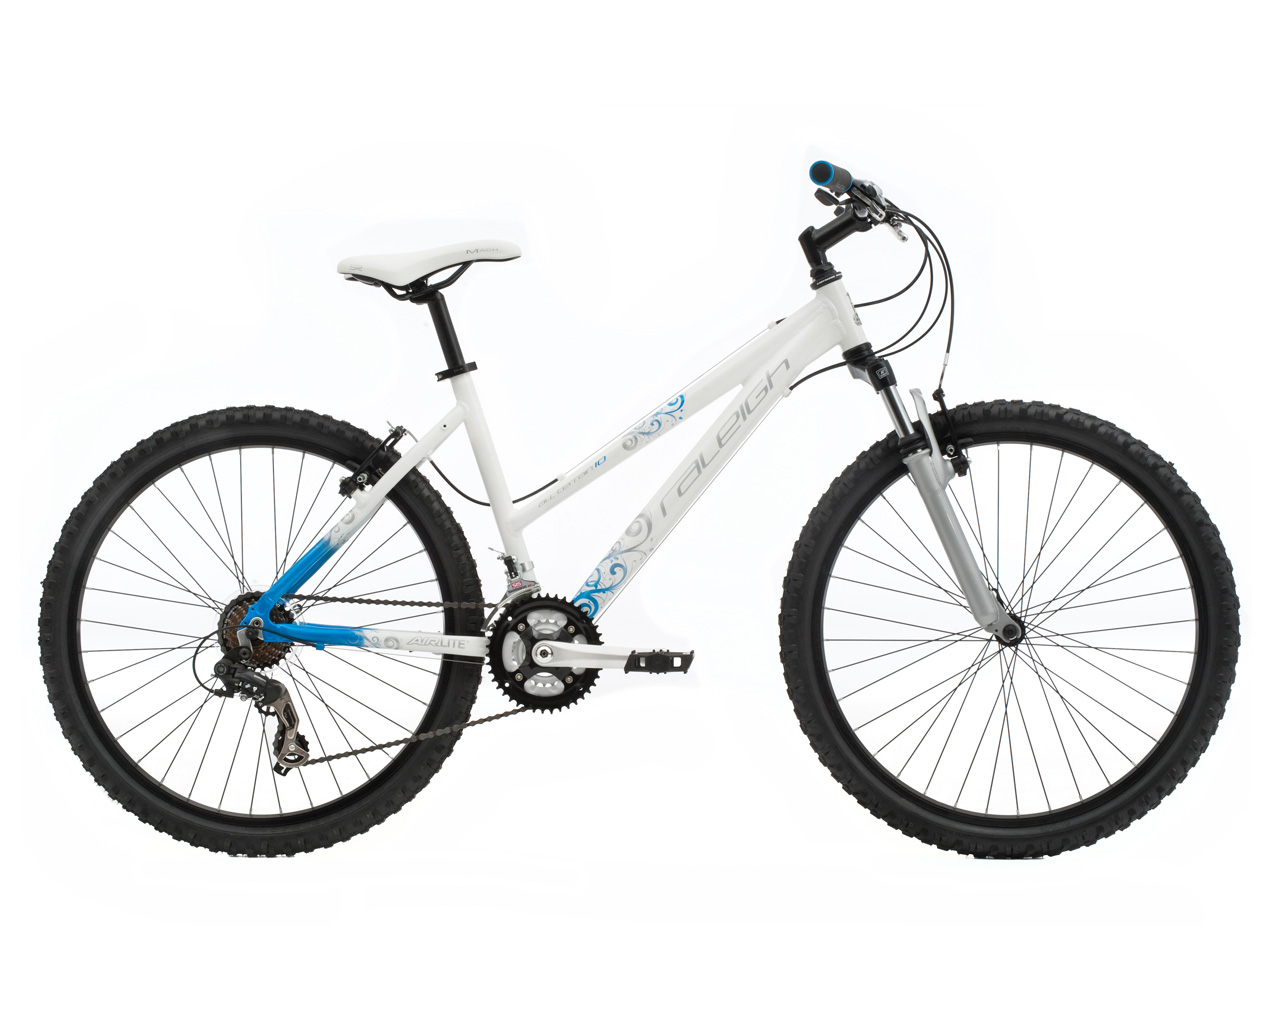 RALEIGH FREERIDE AT10 WOMENS LADIES WHITE/BLUE MOUNTAIN BIKE RRP £259.99 Enlarged Preview